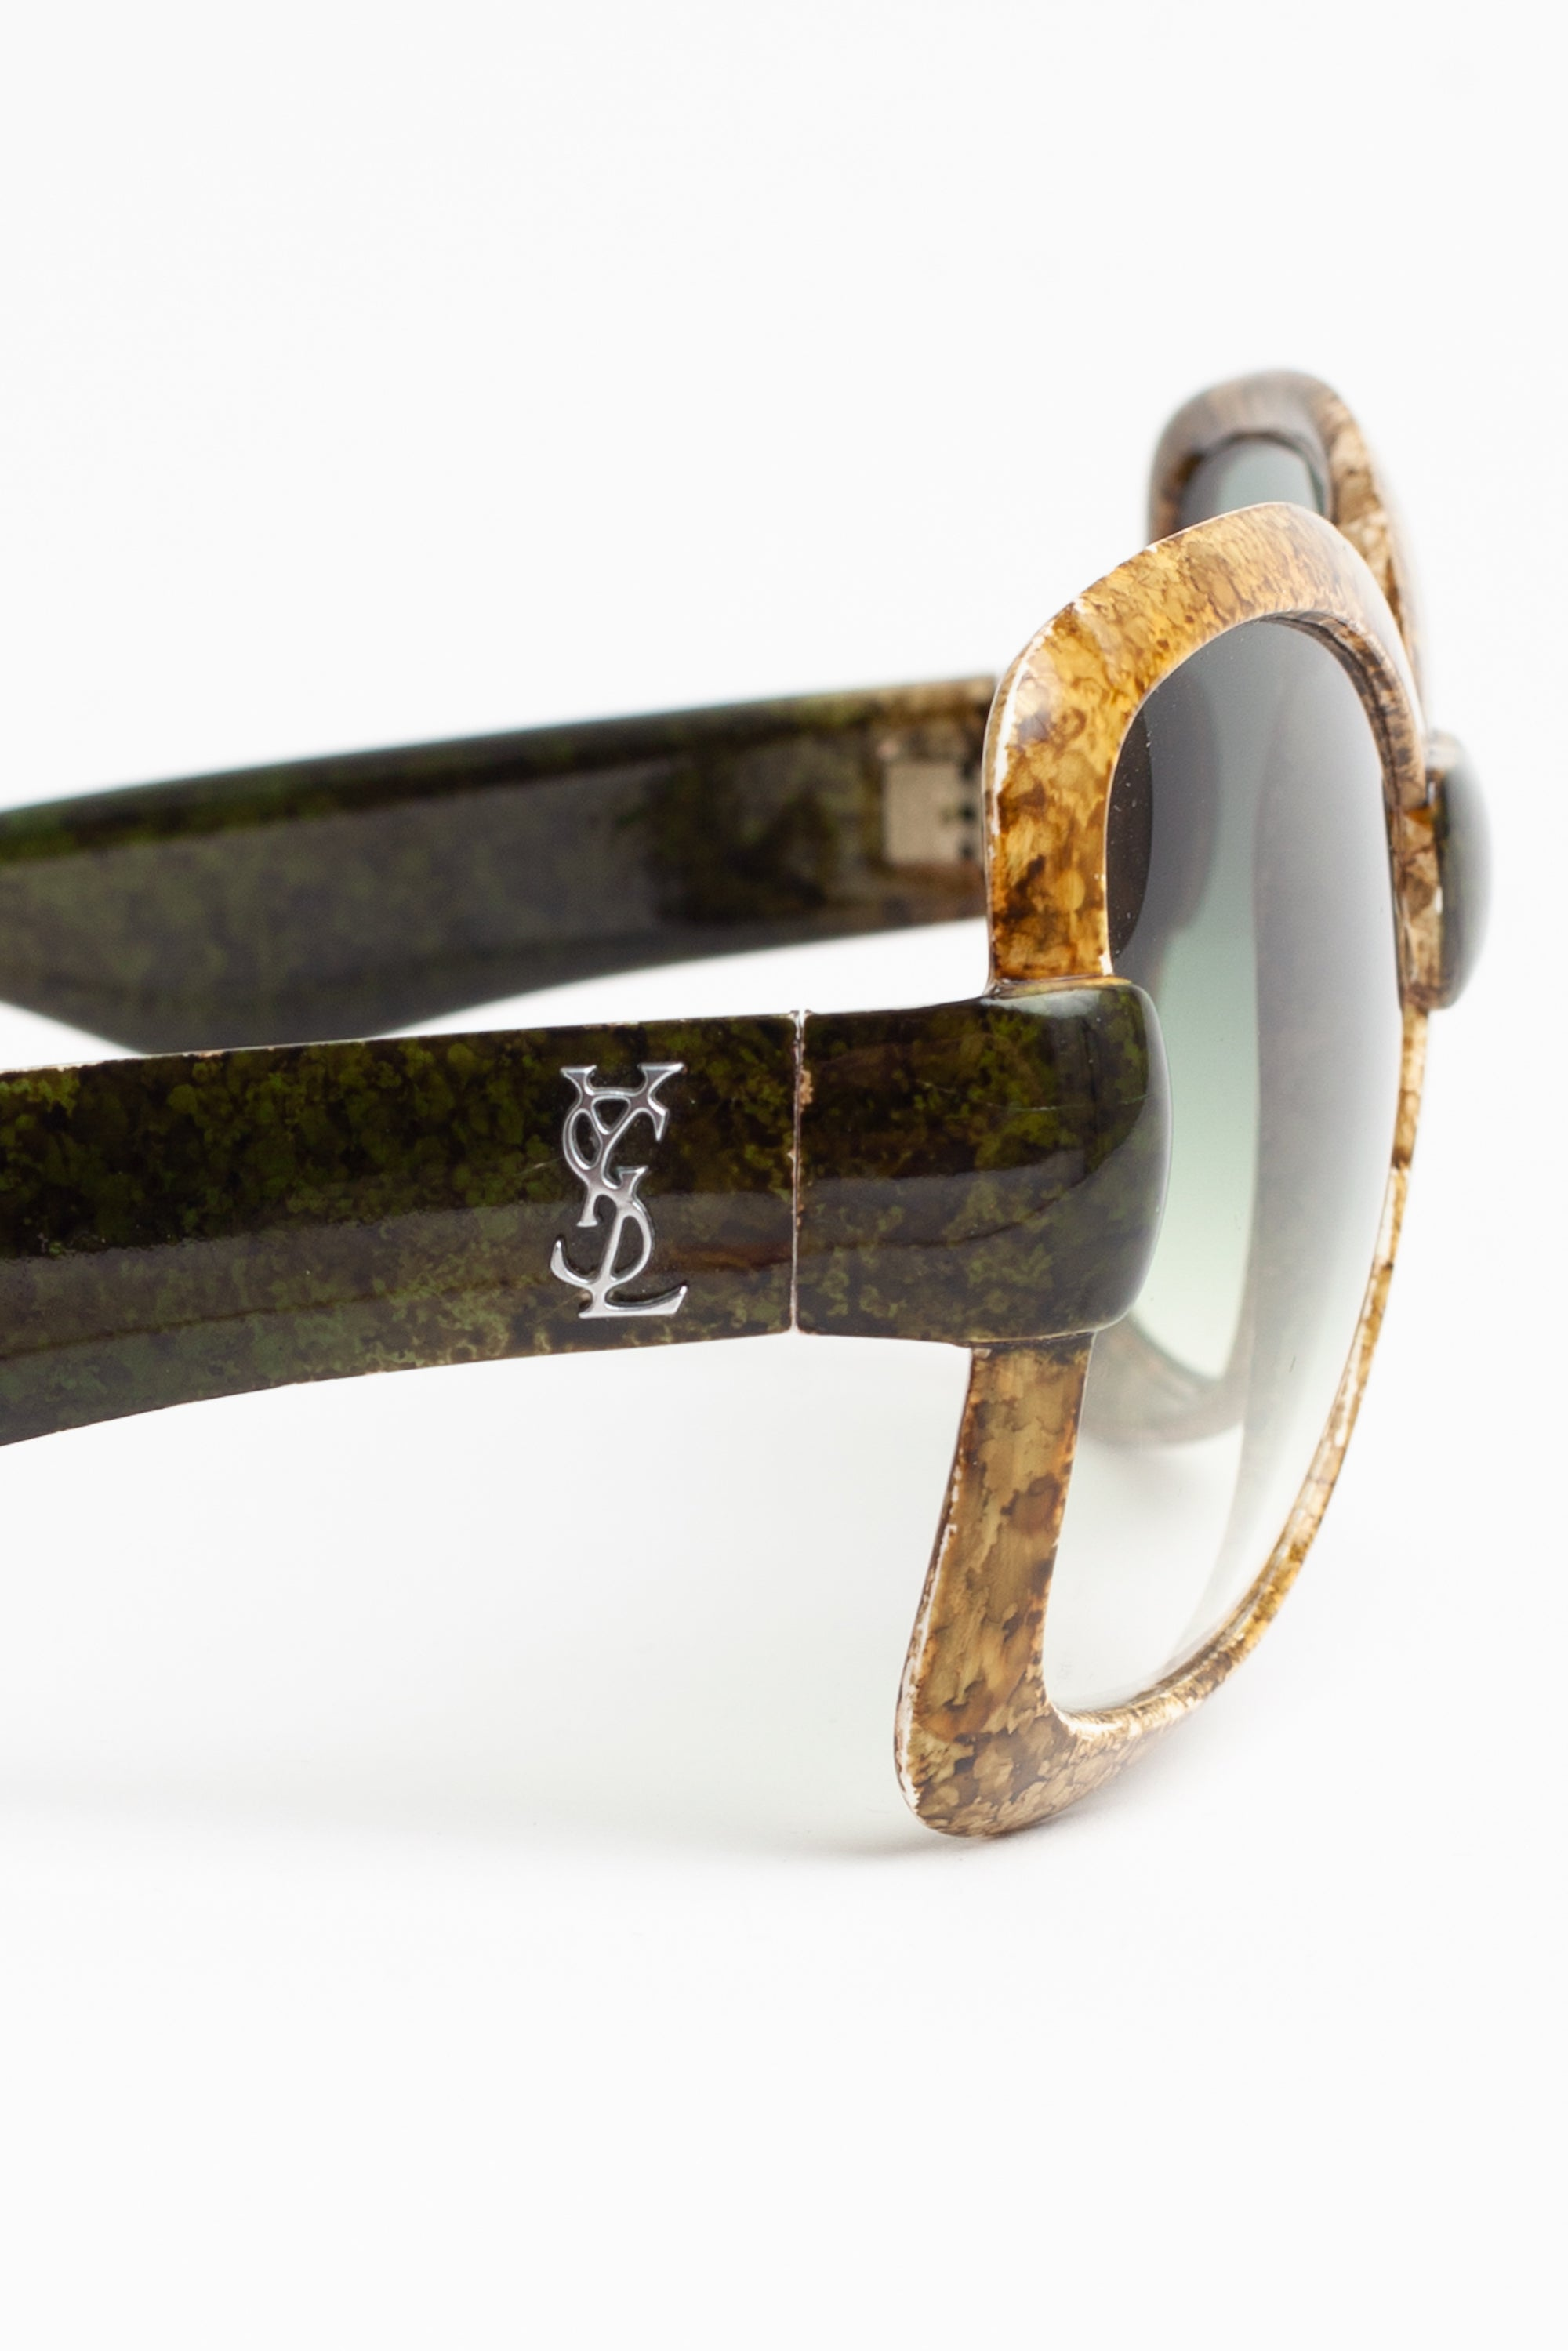 Yves Saint Laurent <br> Iconic 70's marbled green frame oversized sunglasses